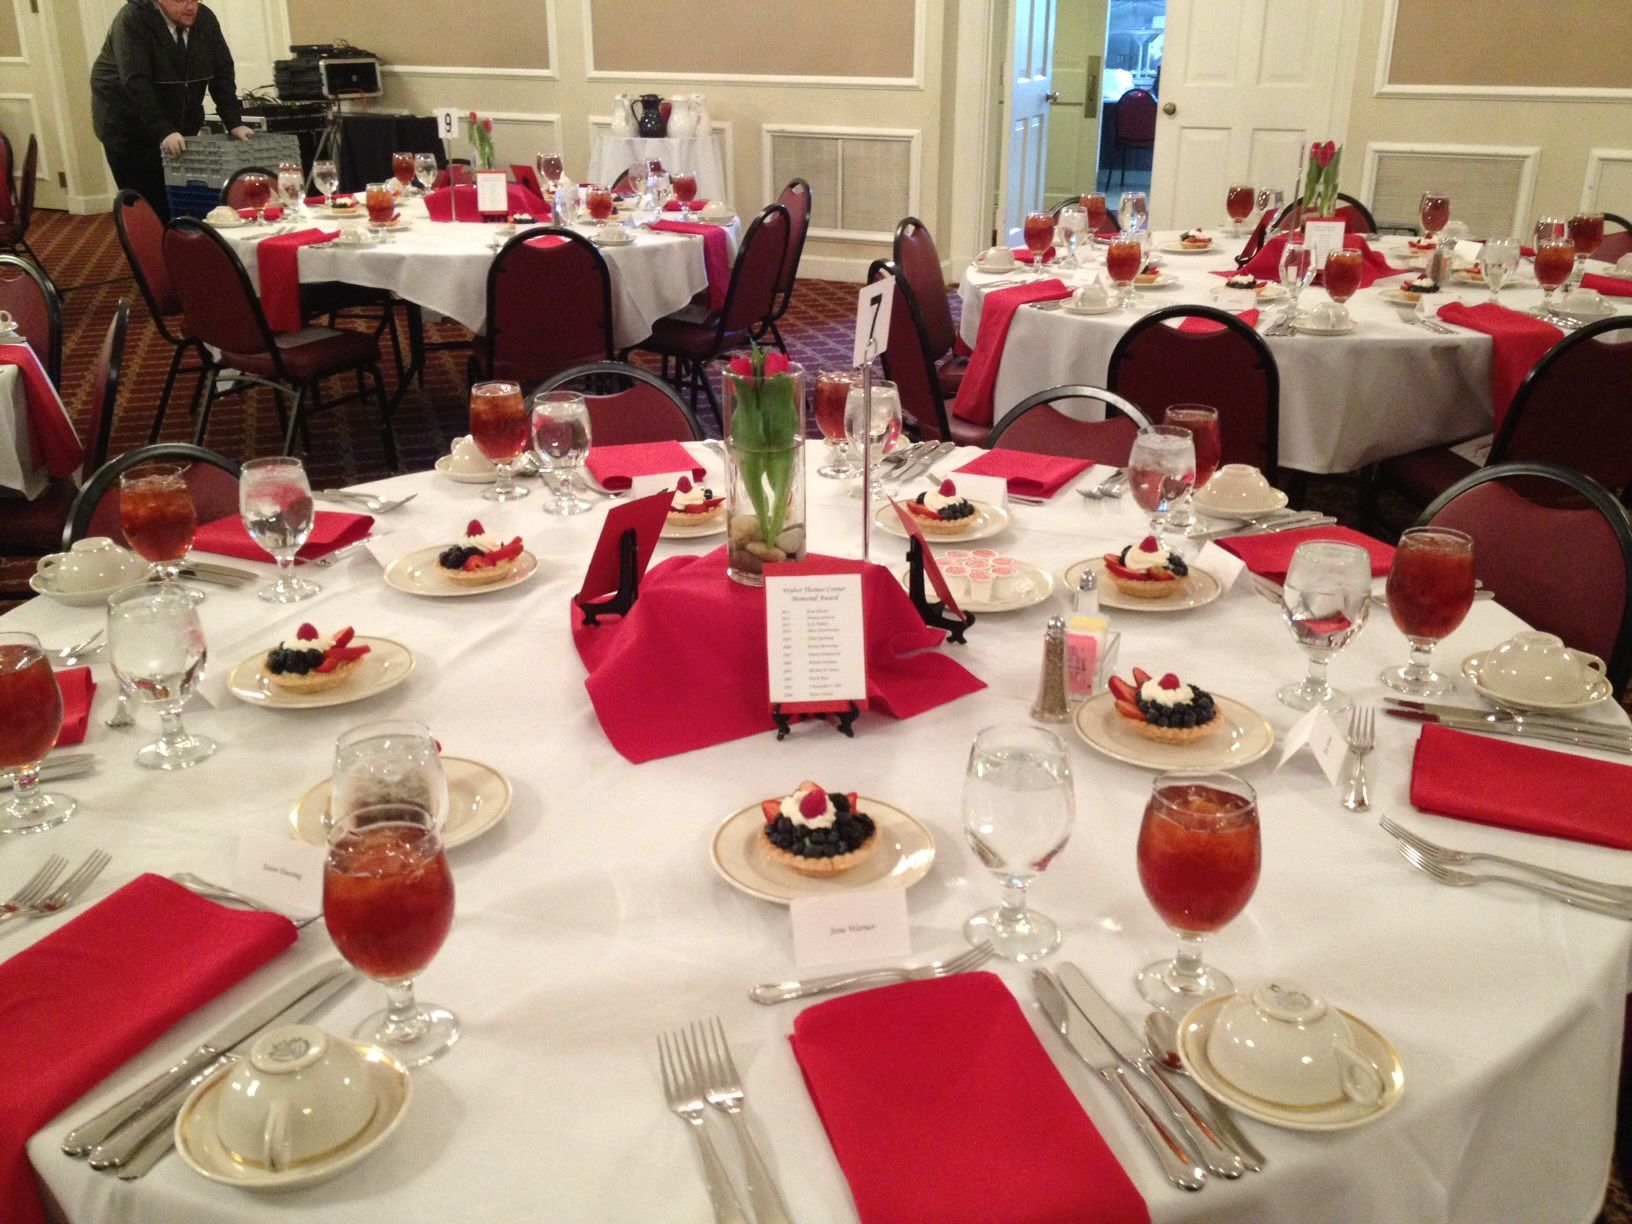 Tablescape for student awards banquet event